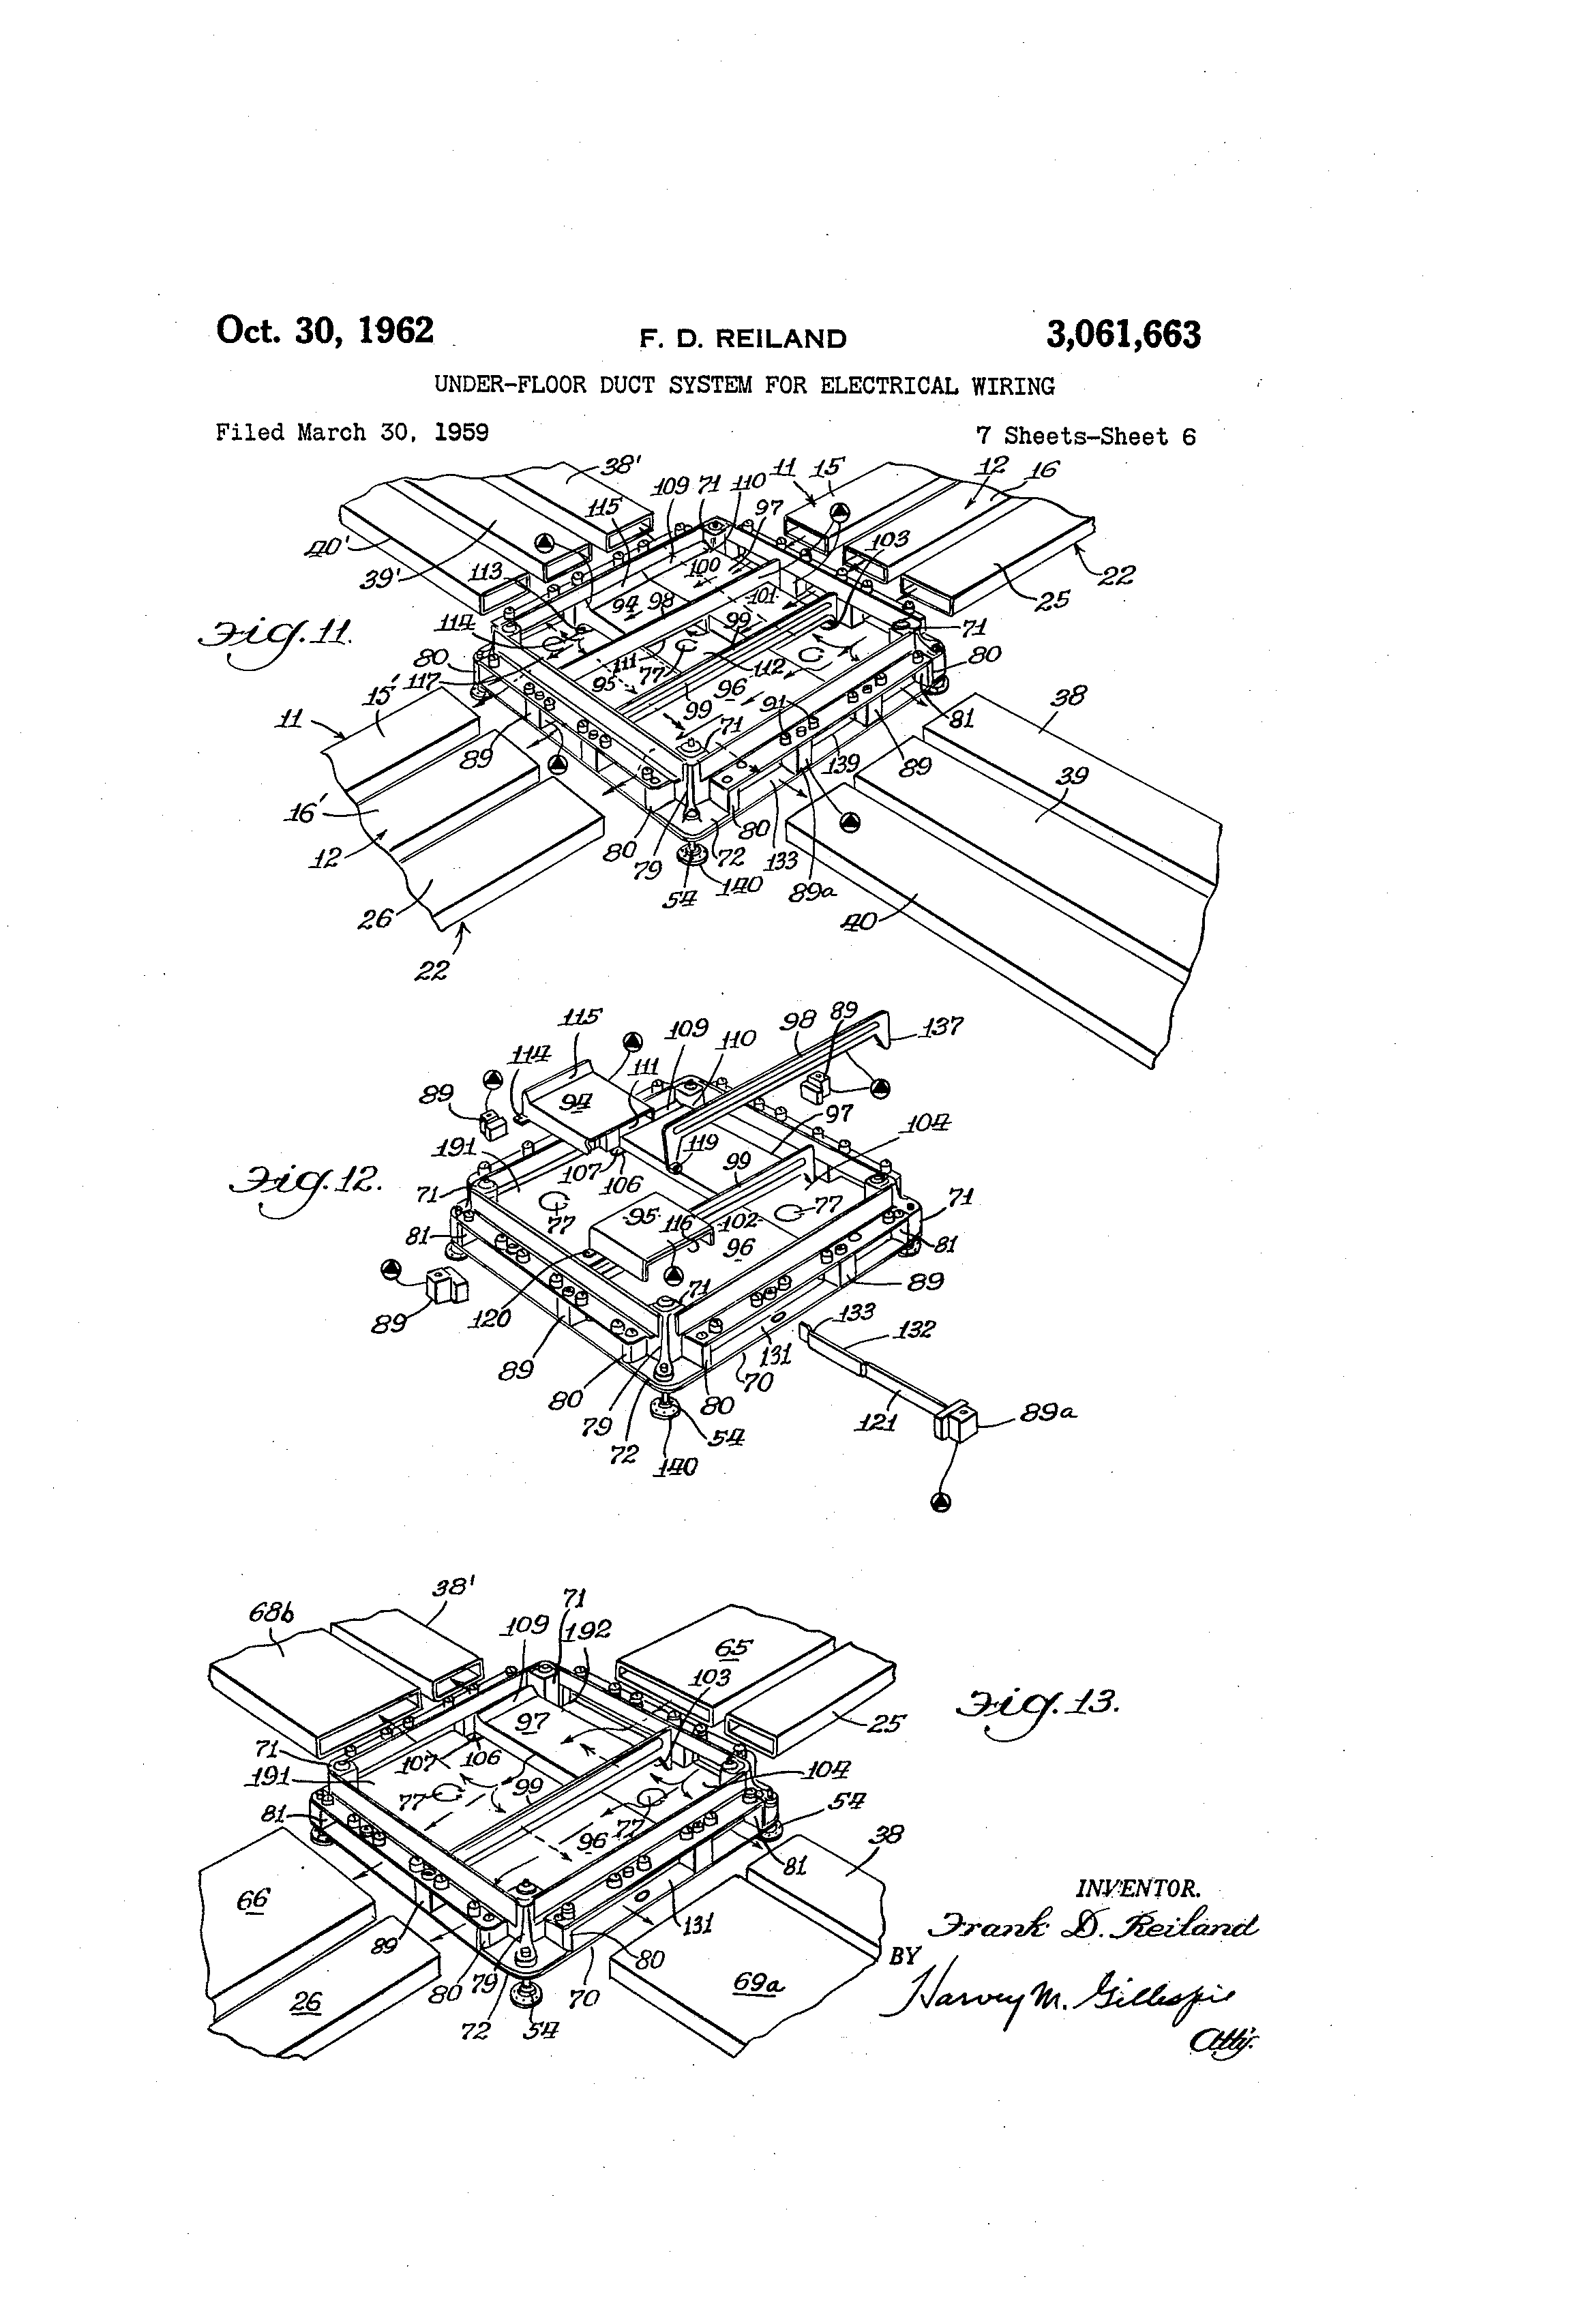 patent us3061663 - under-floor duct system for electrical wiring